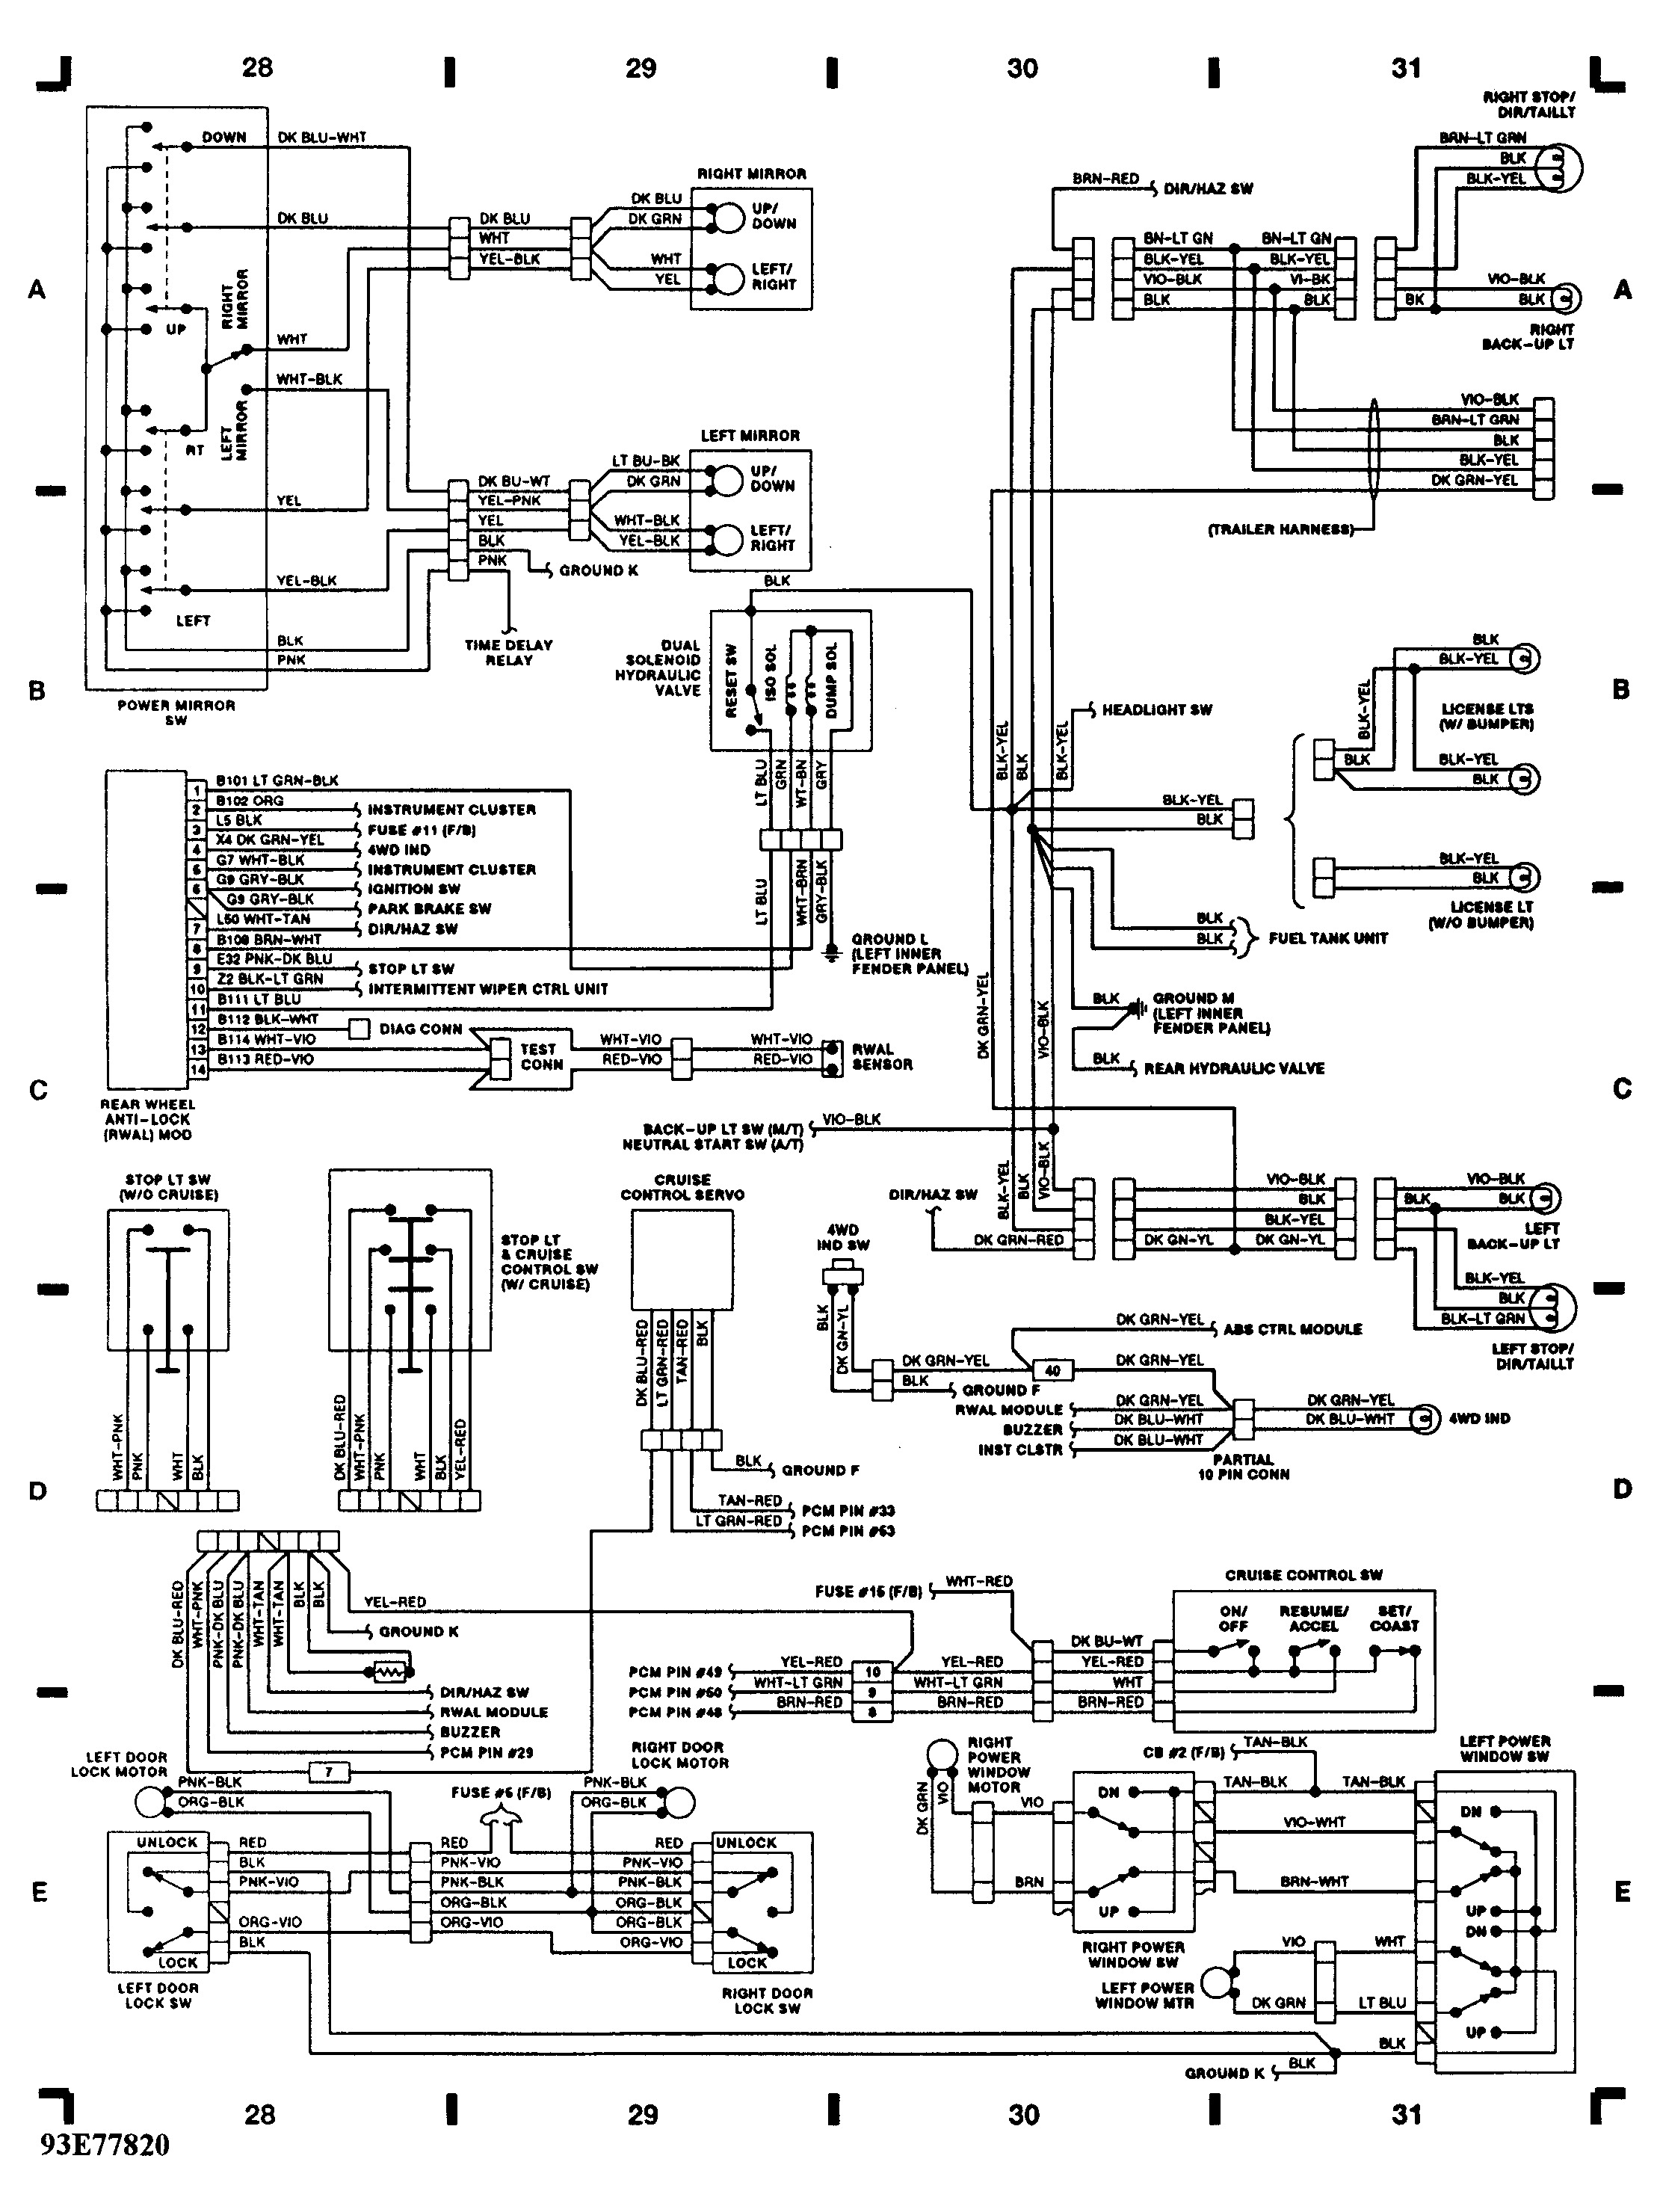 F350 Trailer Wiring Diagram Parts Wiring Diagram Images